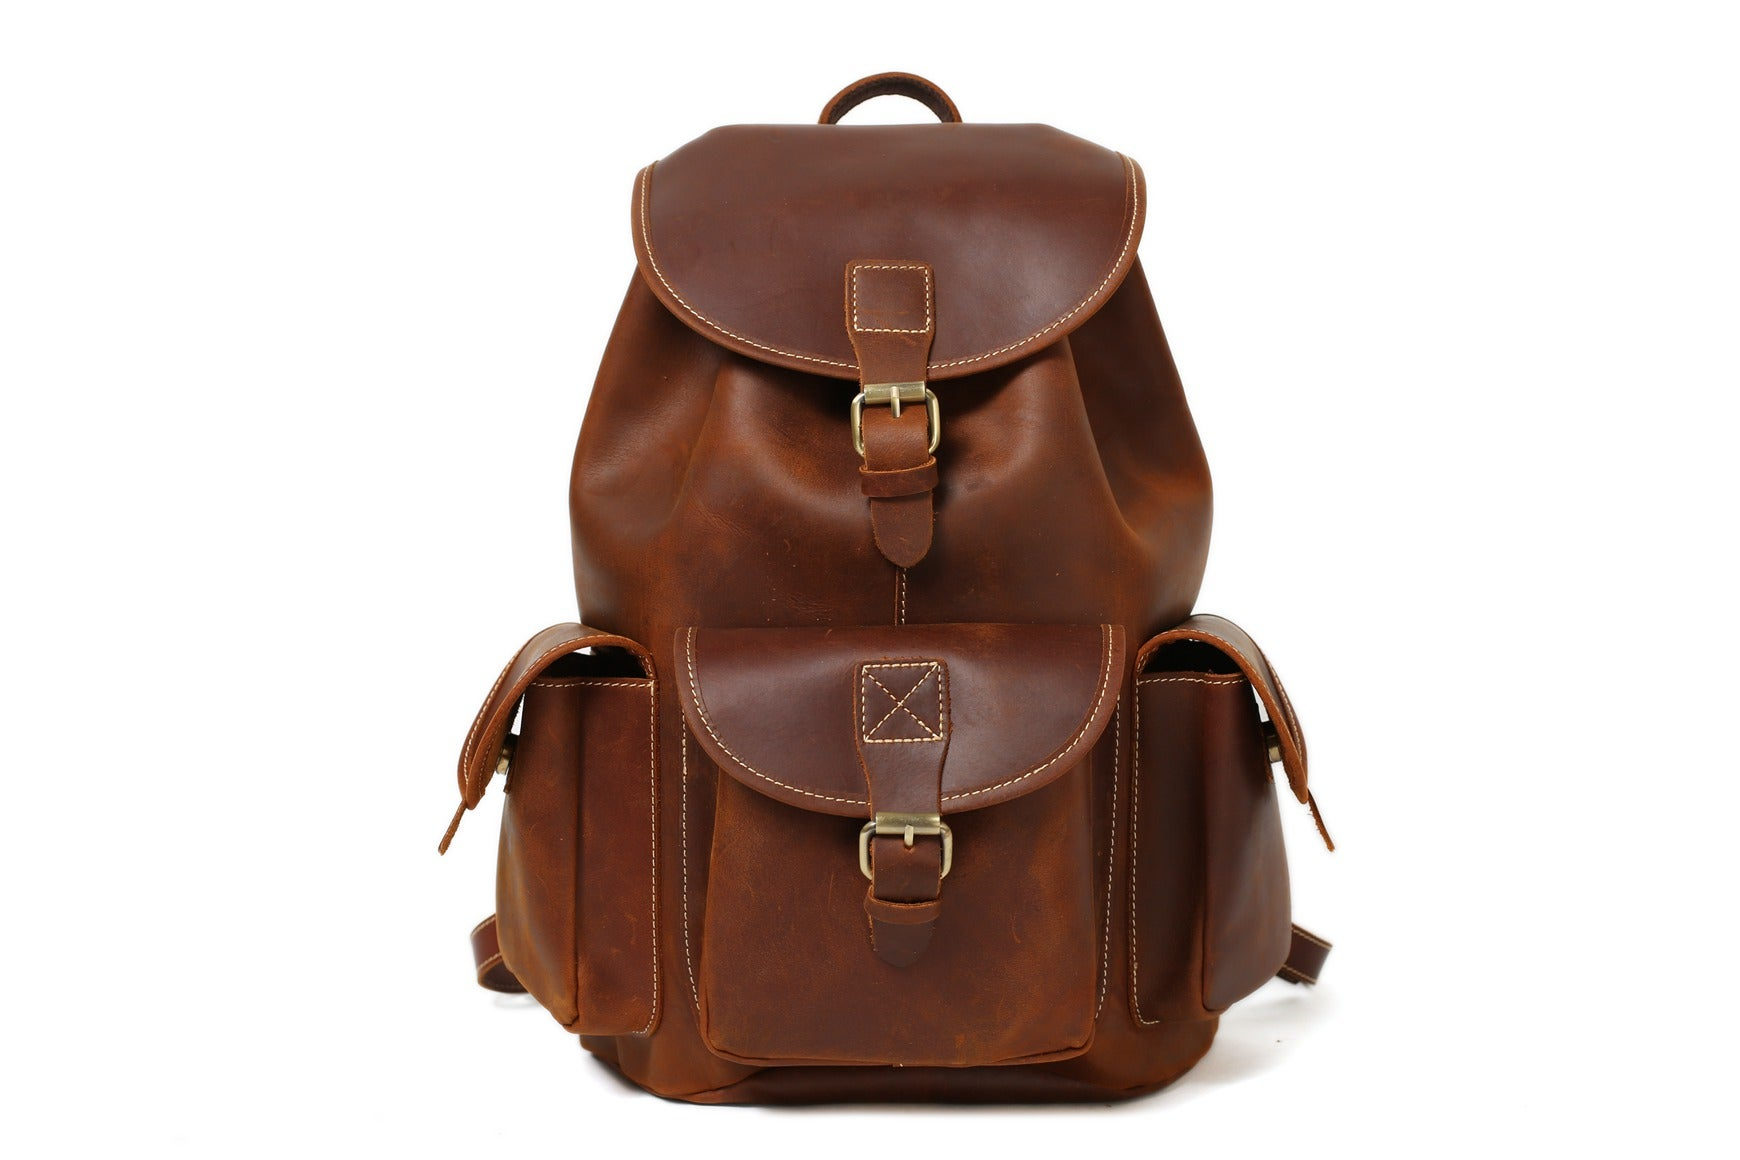 MoshiLeatherBag - Handmade Leather Bag Manufacturer — Medium Size Handmade Leather  Backpack College Backpack School Backpack 8891M d88e611536671